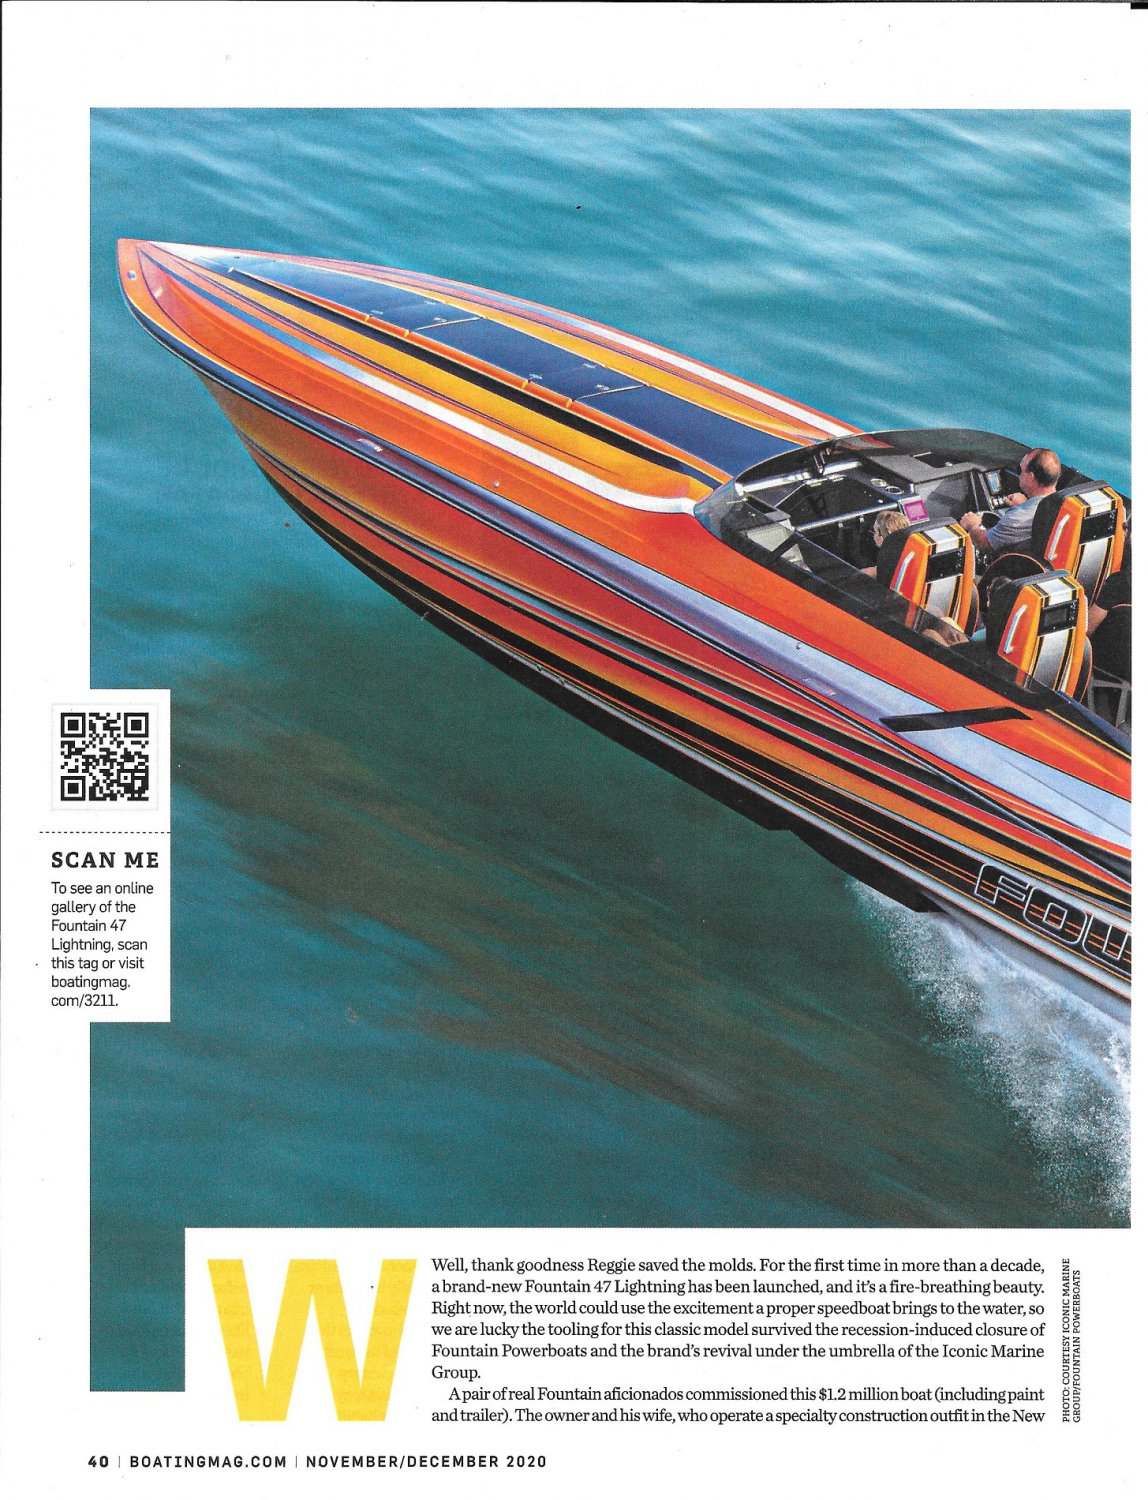 2021 Fountain 47 Lightning Boat Review- Boat Specs & Nice Photos